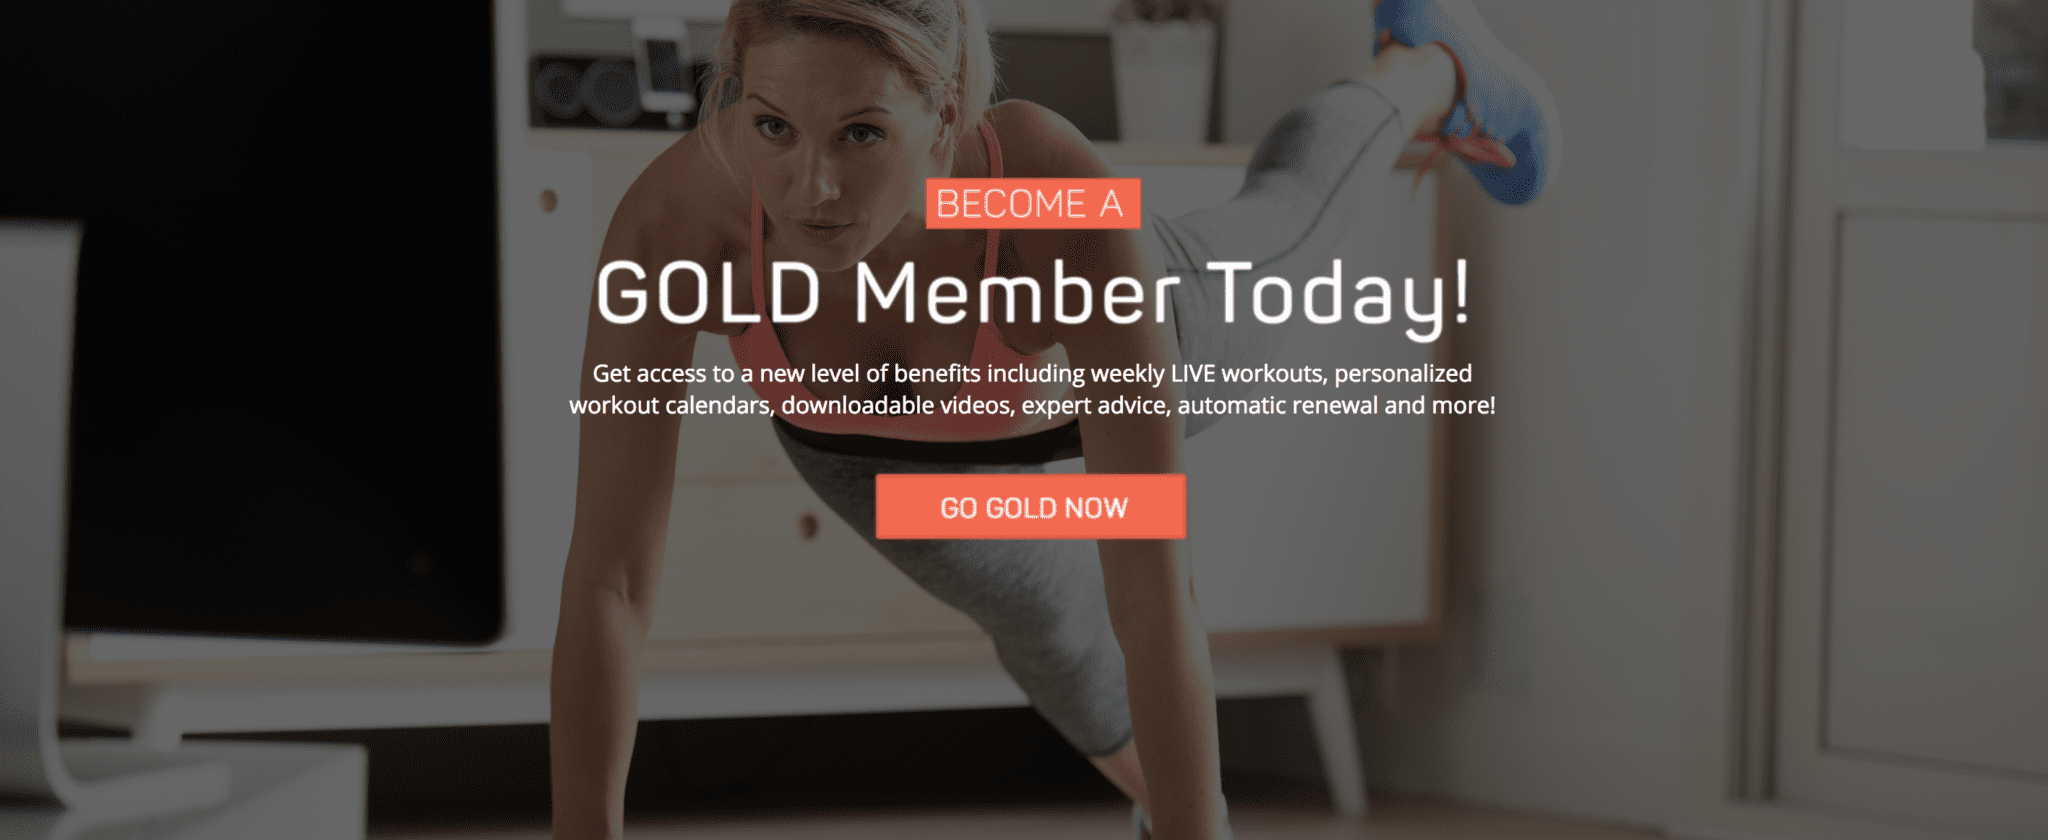 Get Healthy U TV Gold Member